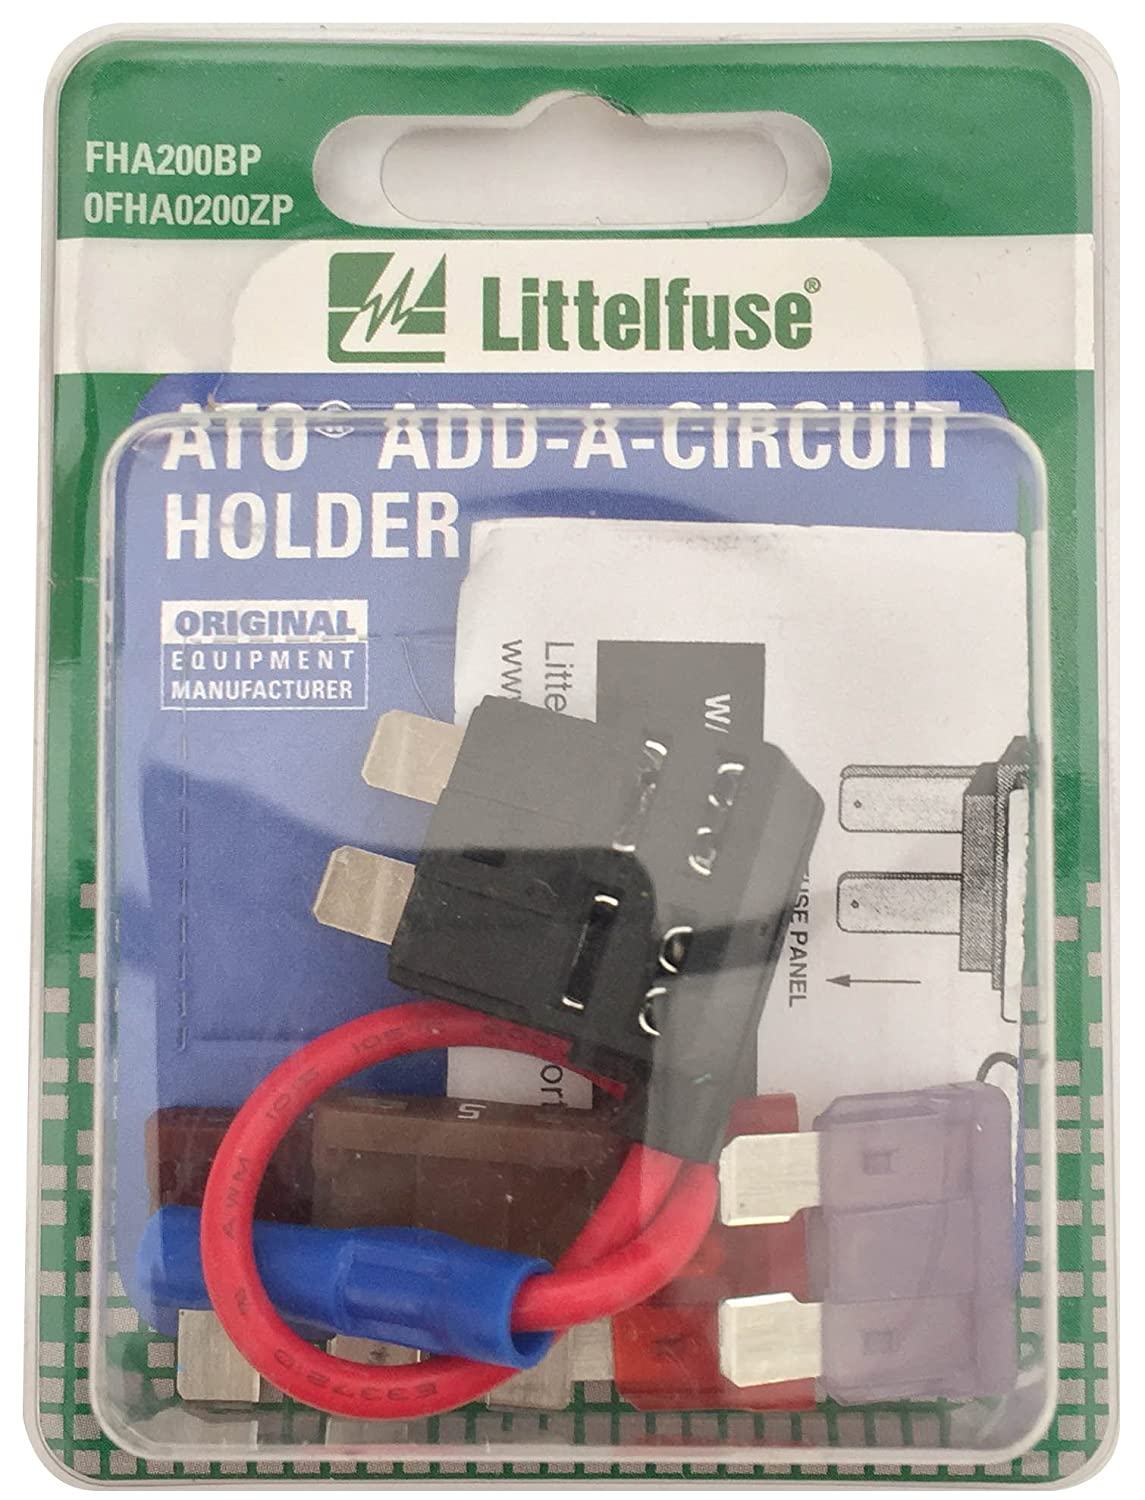 Littelfuse Fha200bp Ato Add A Circuit Kit Blade Fuses Old Fuse Box Holders